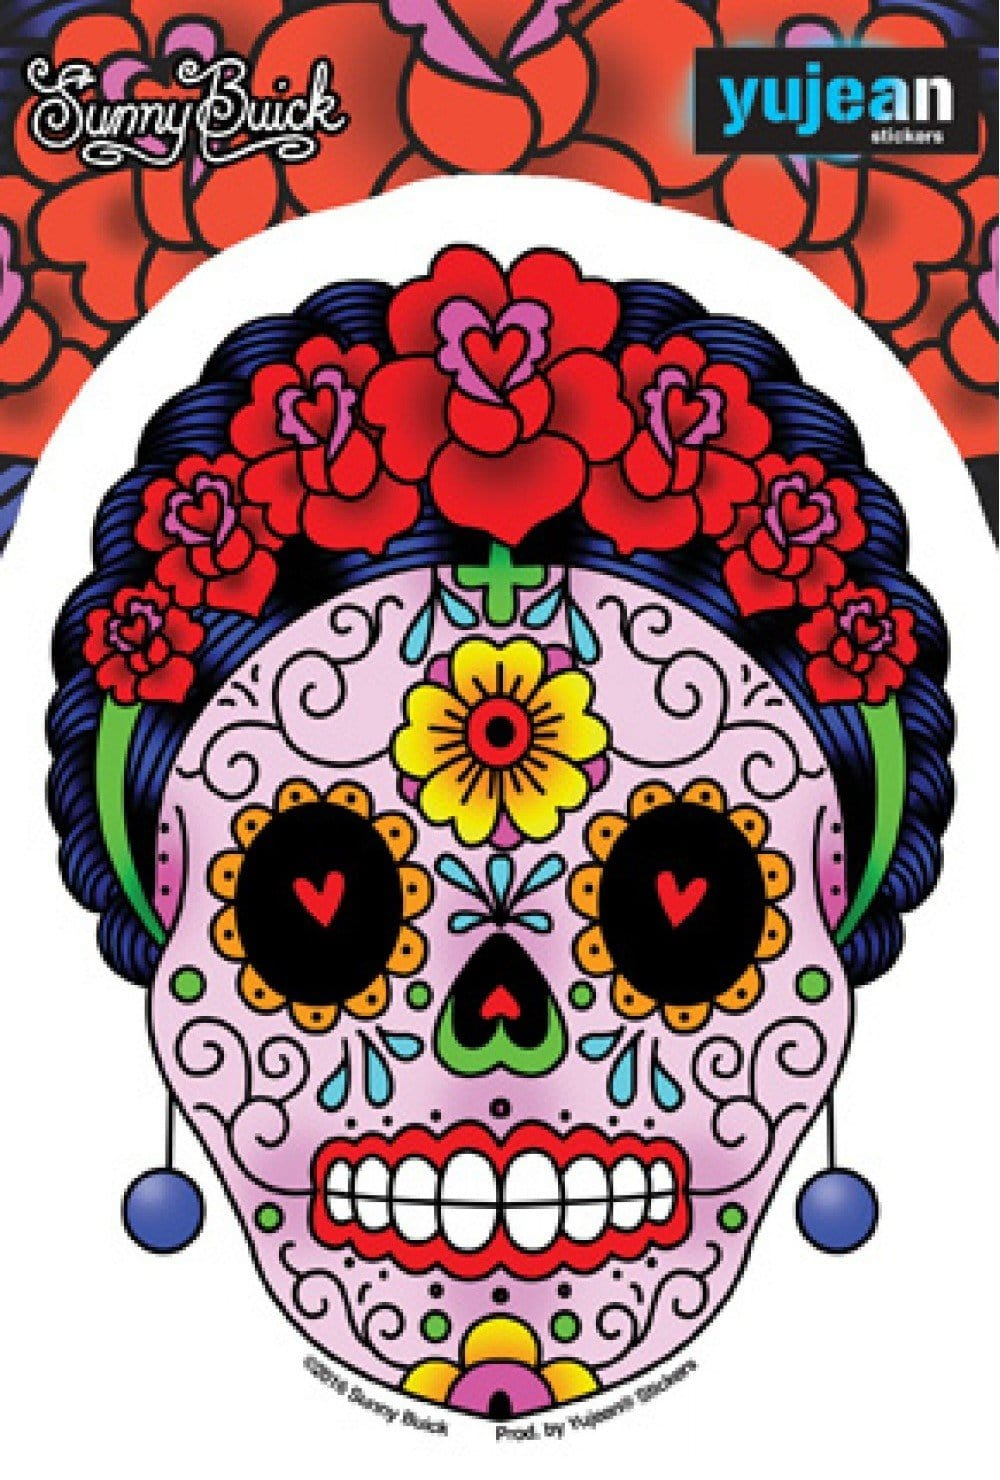 Stickers Sunny Buick Calavera Frida Sugar Skull - Sticker 100565